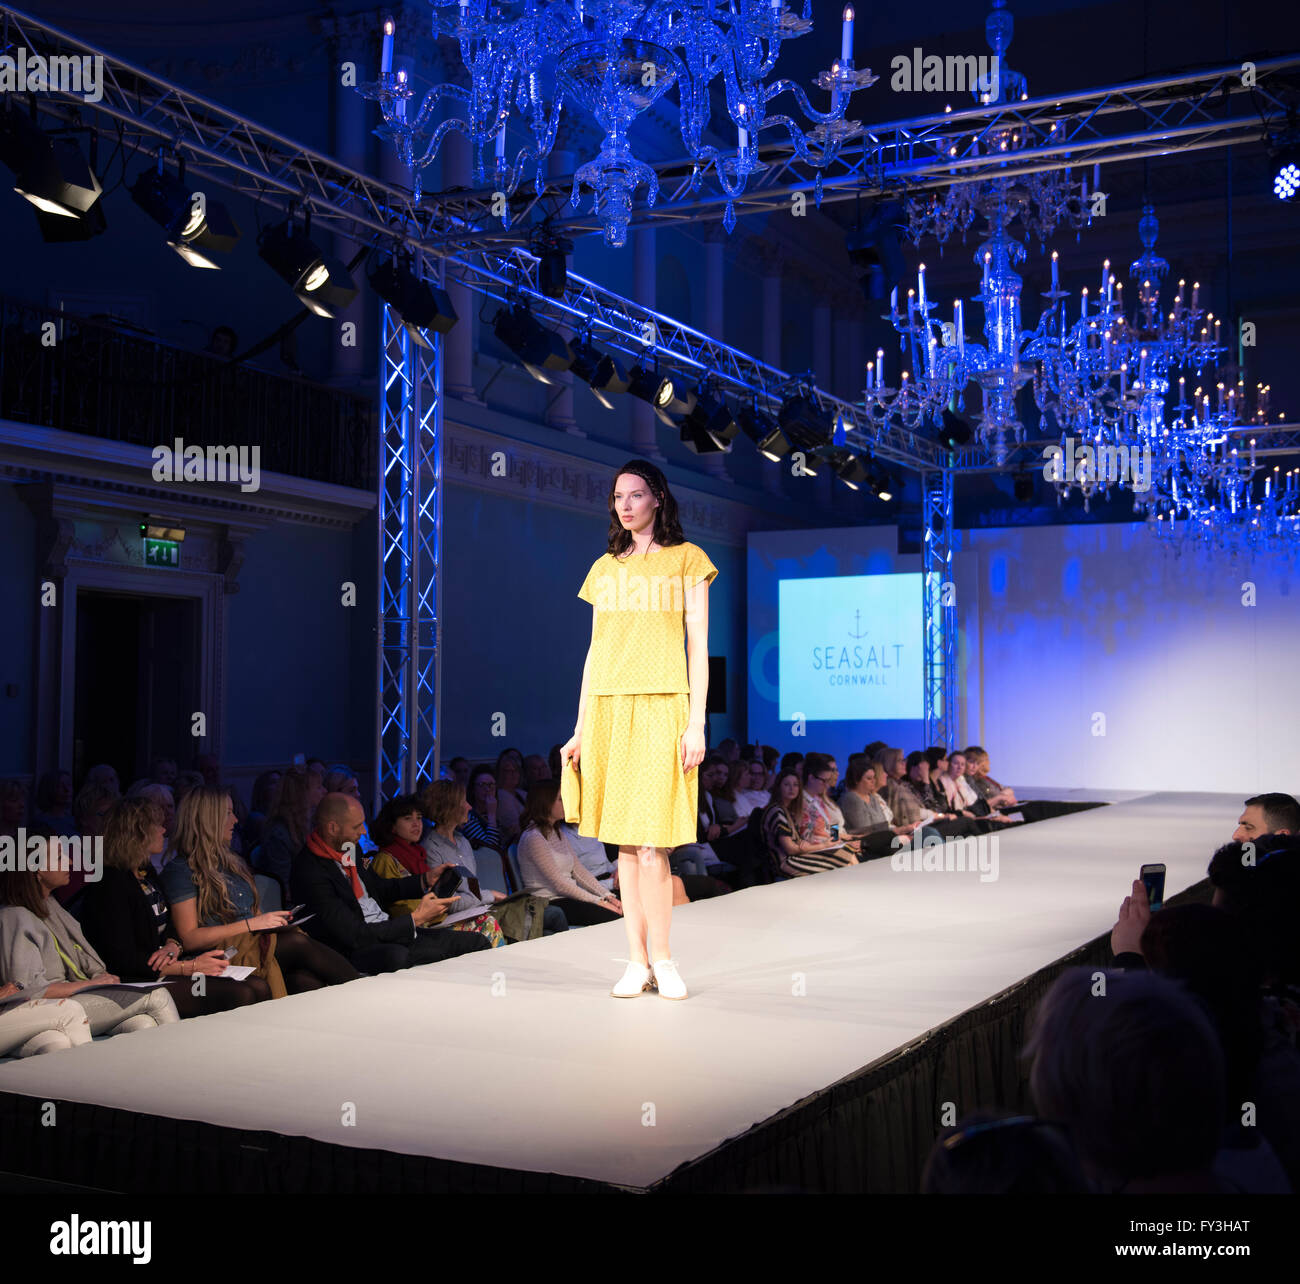 Alamy news Bath in Fashion 2016. Catwalk. Shops. Model. Spring Summer 2016. Seasalt. Beauty. Events. People watching. - Stock Image